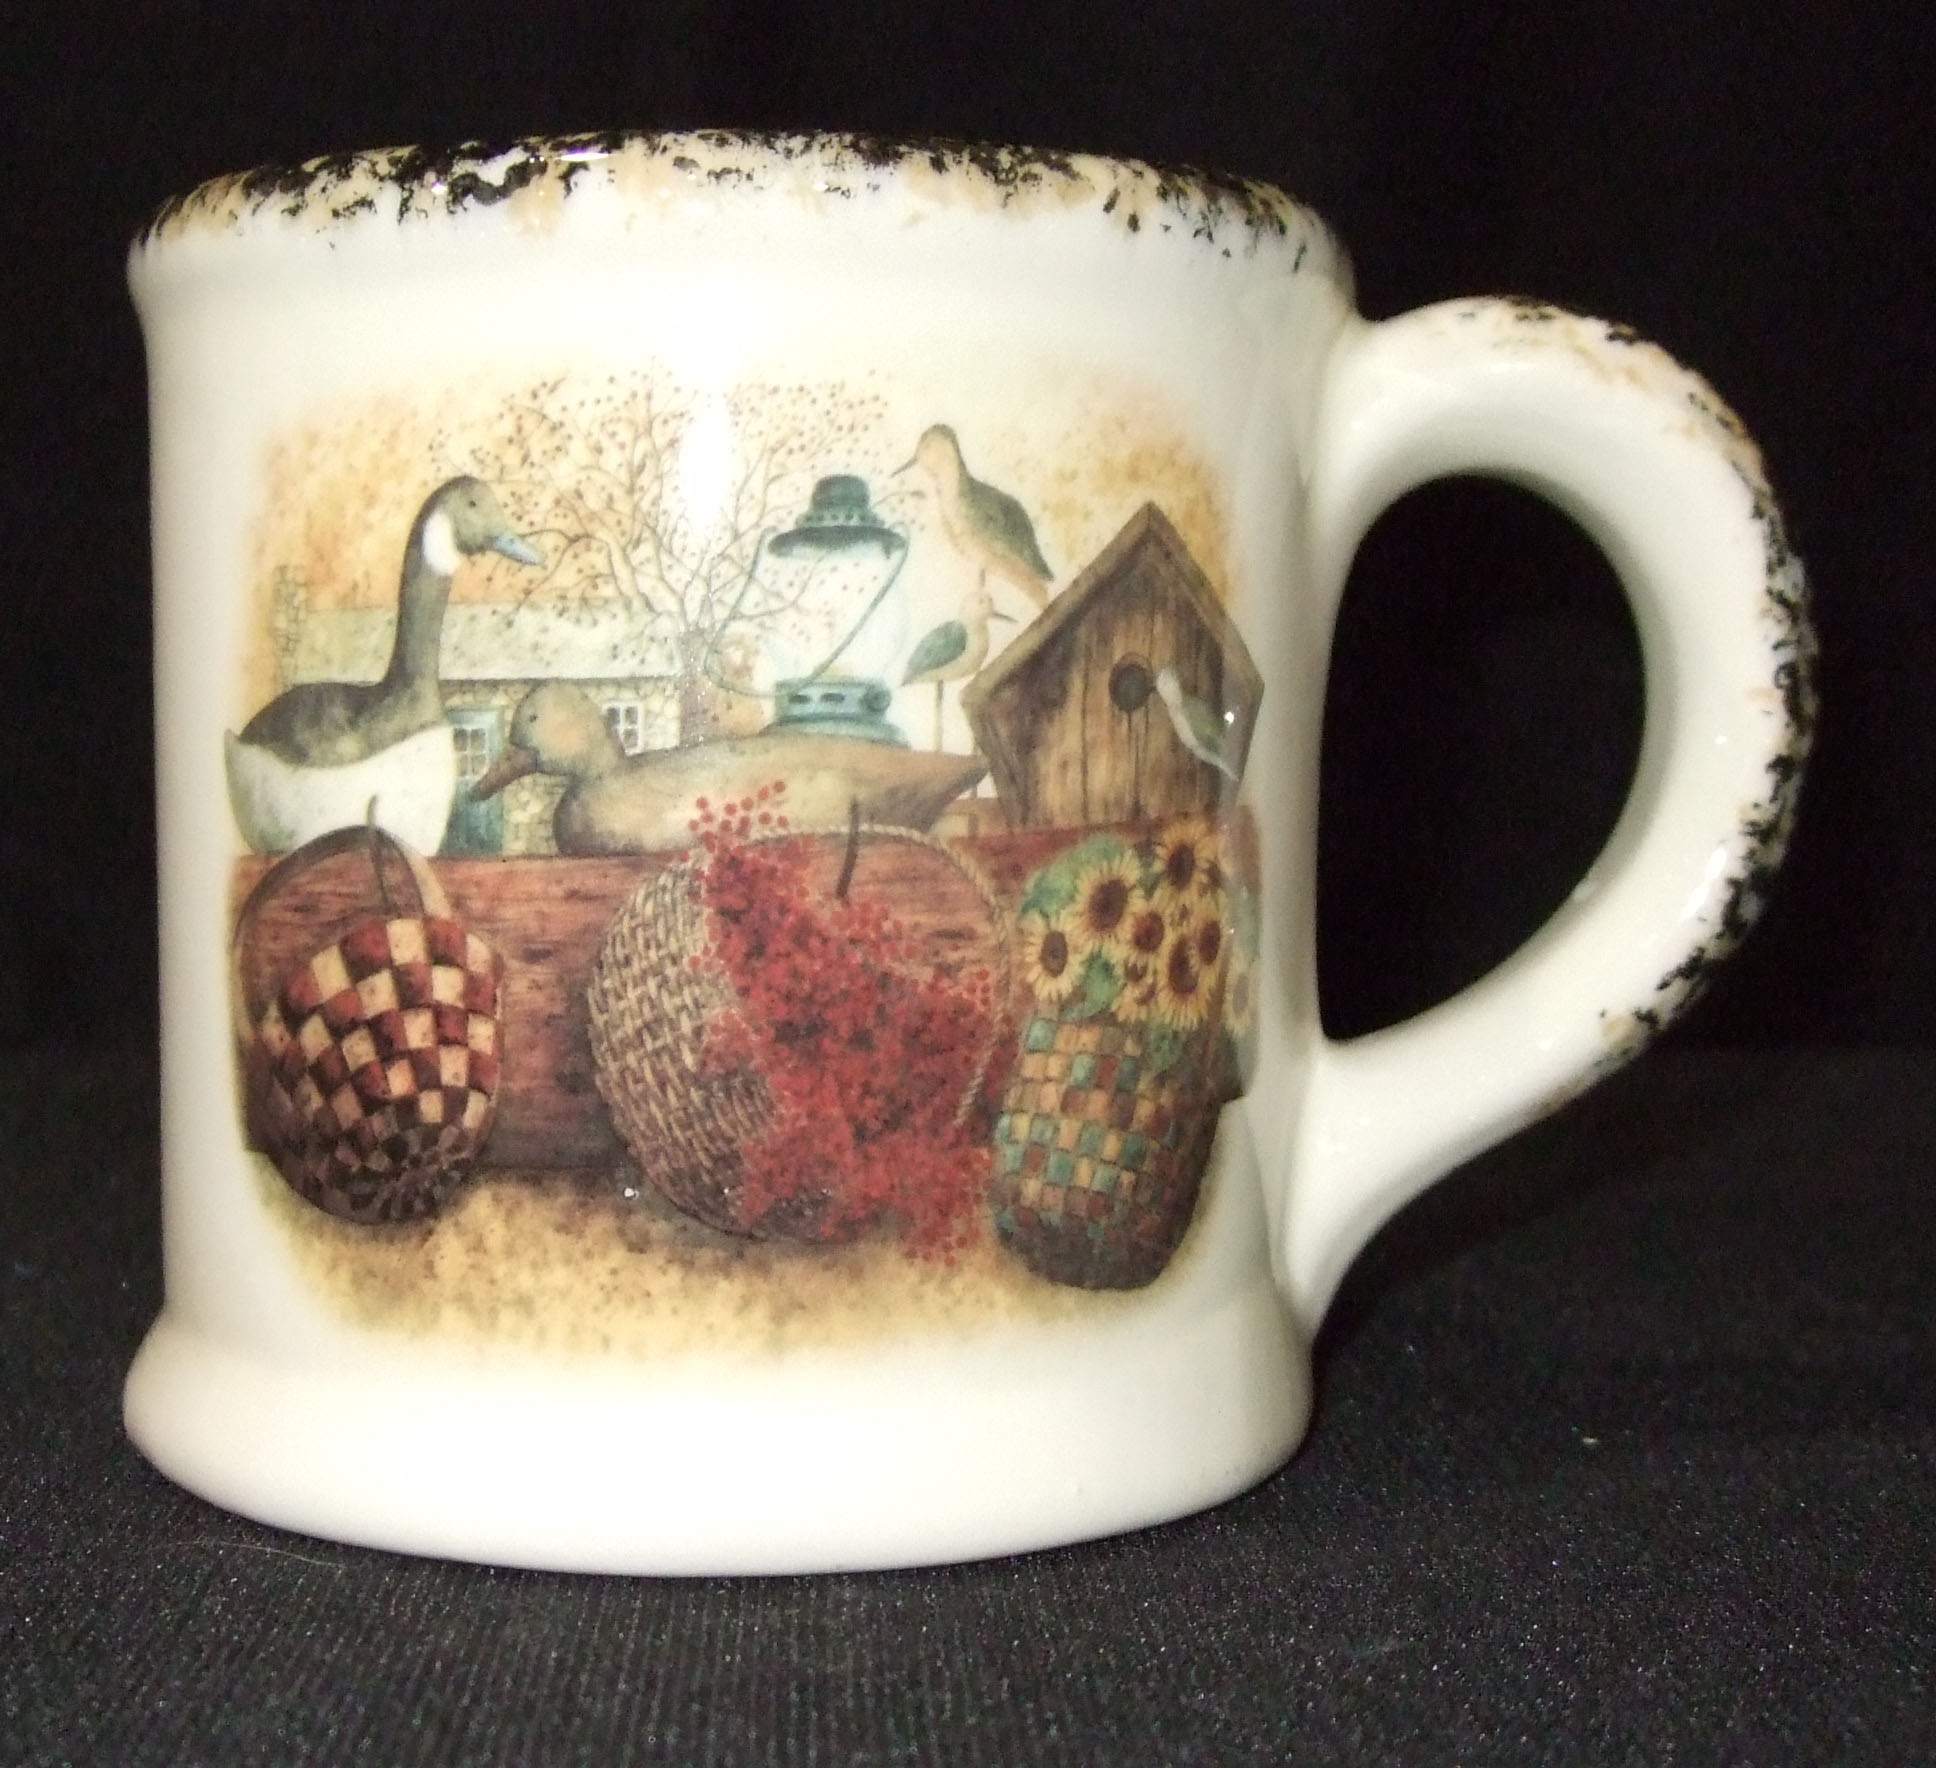 mug, mugs, ceramics, pottery, cup, tableware